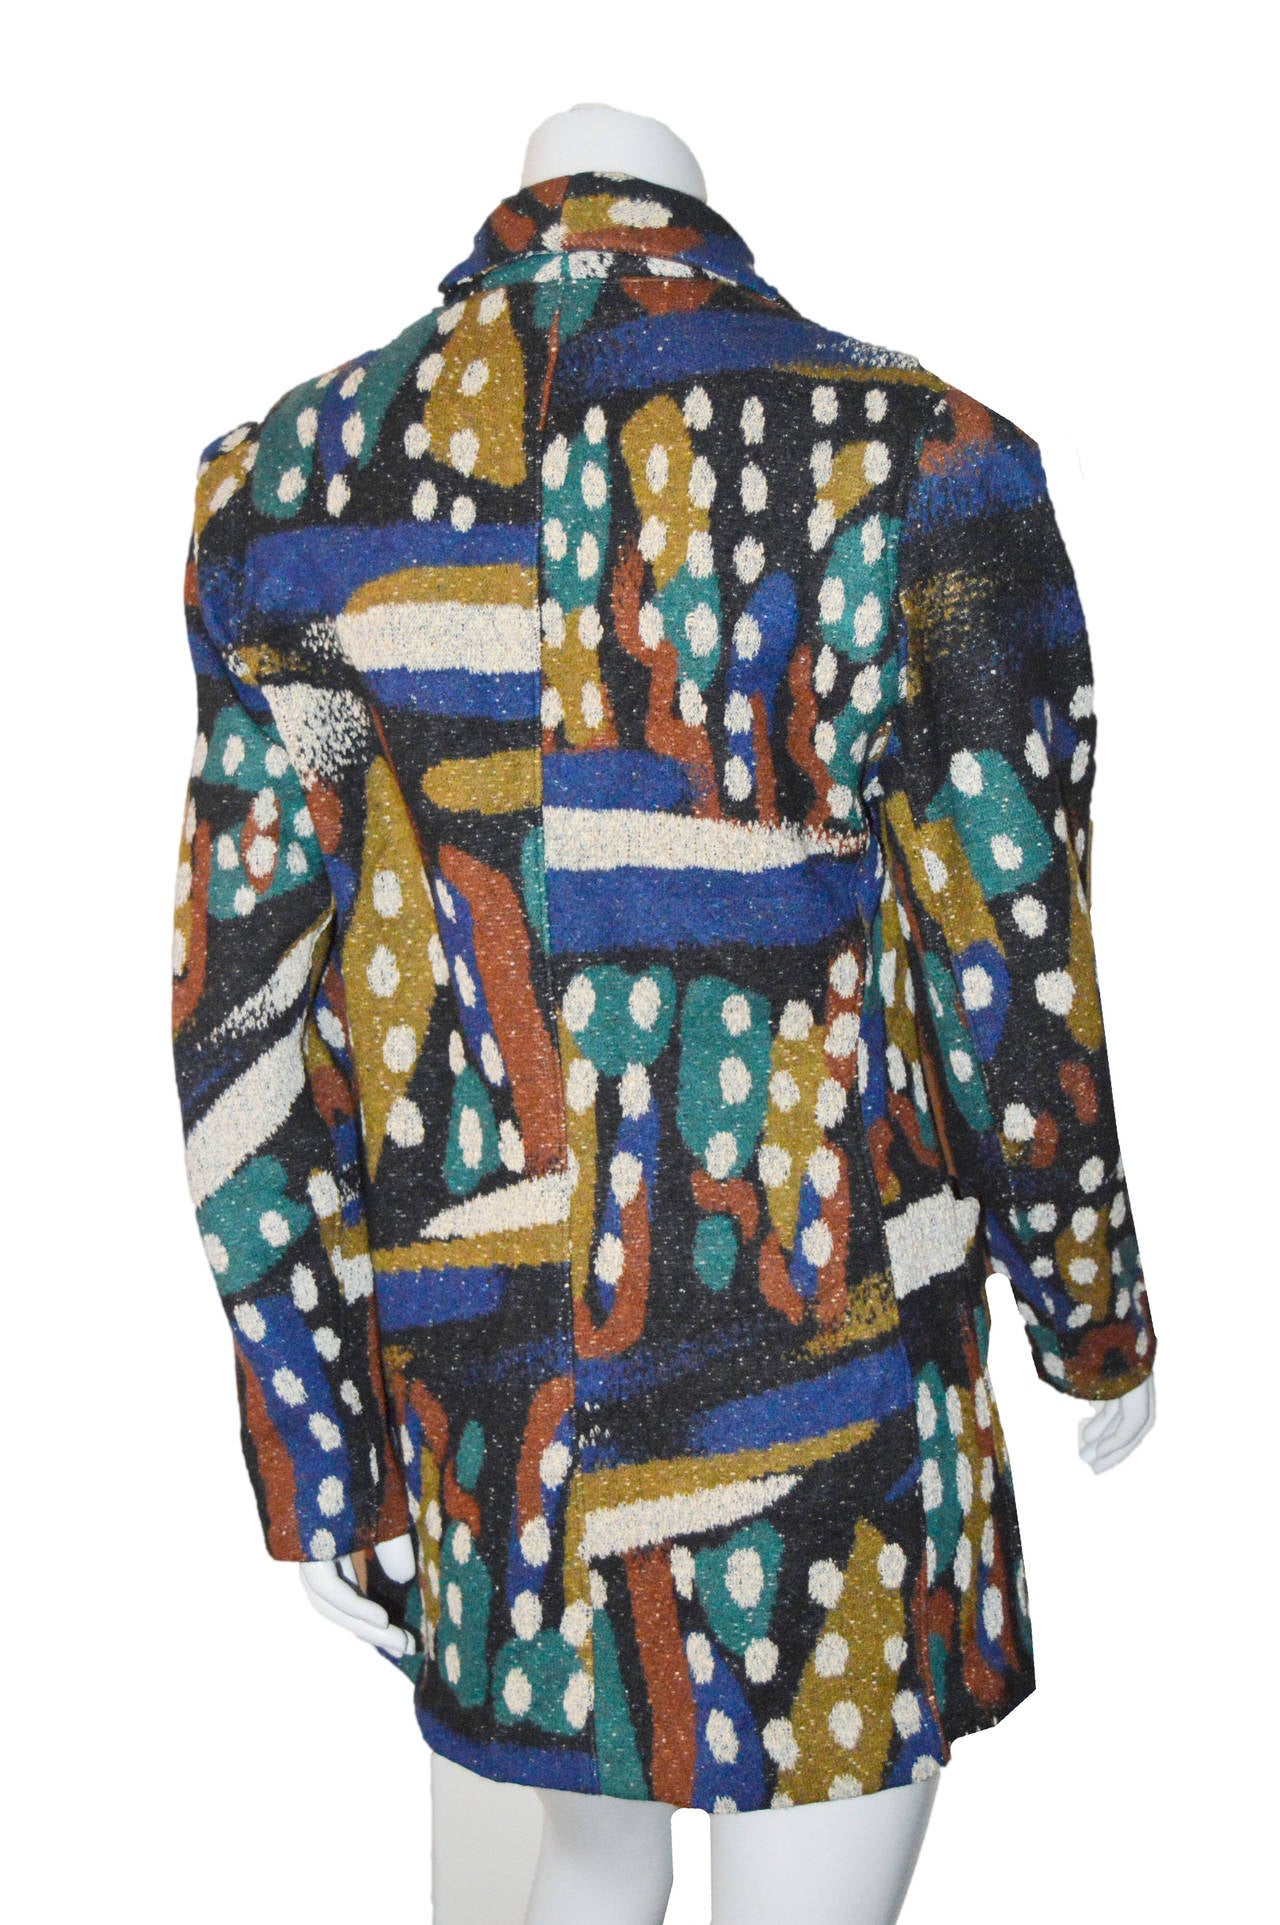 Vintage Missoni coat in a rich Autumn color palette.  Slightly fitted shape with wood buttons. Lightly padded shoulders for shape. Large front pockets. Unlined.